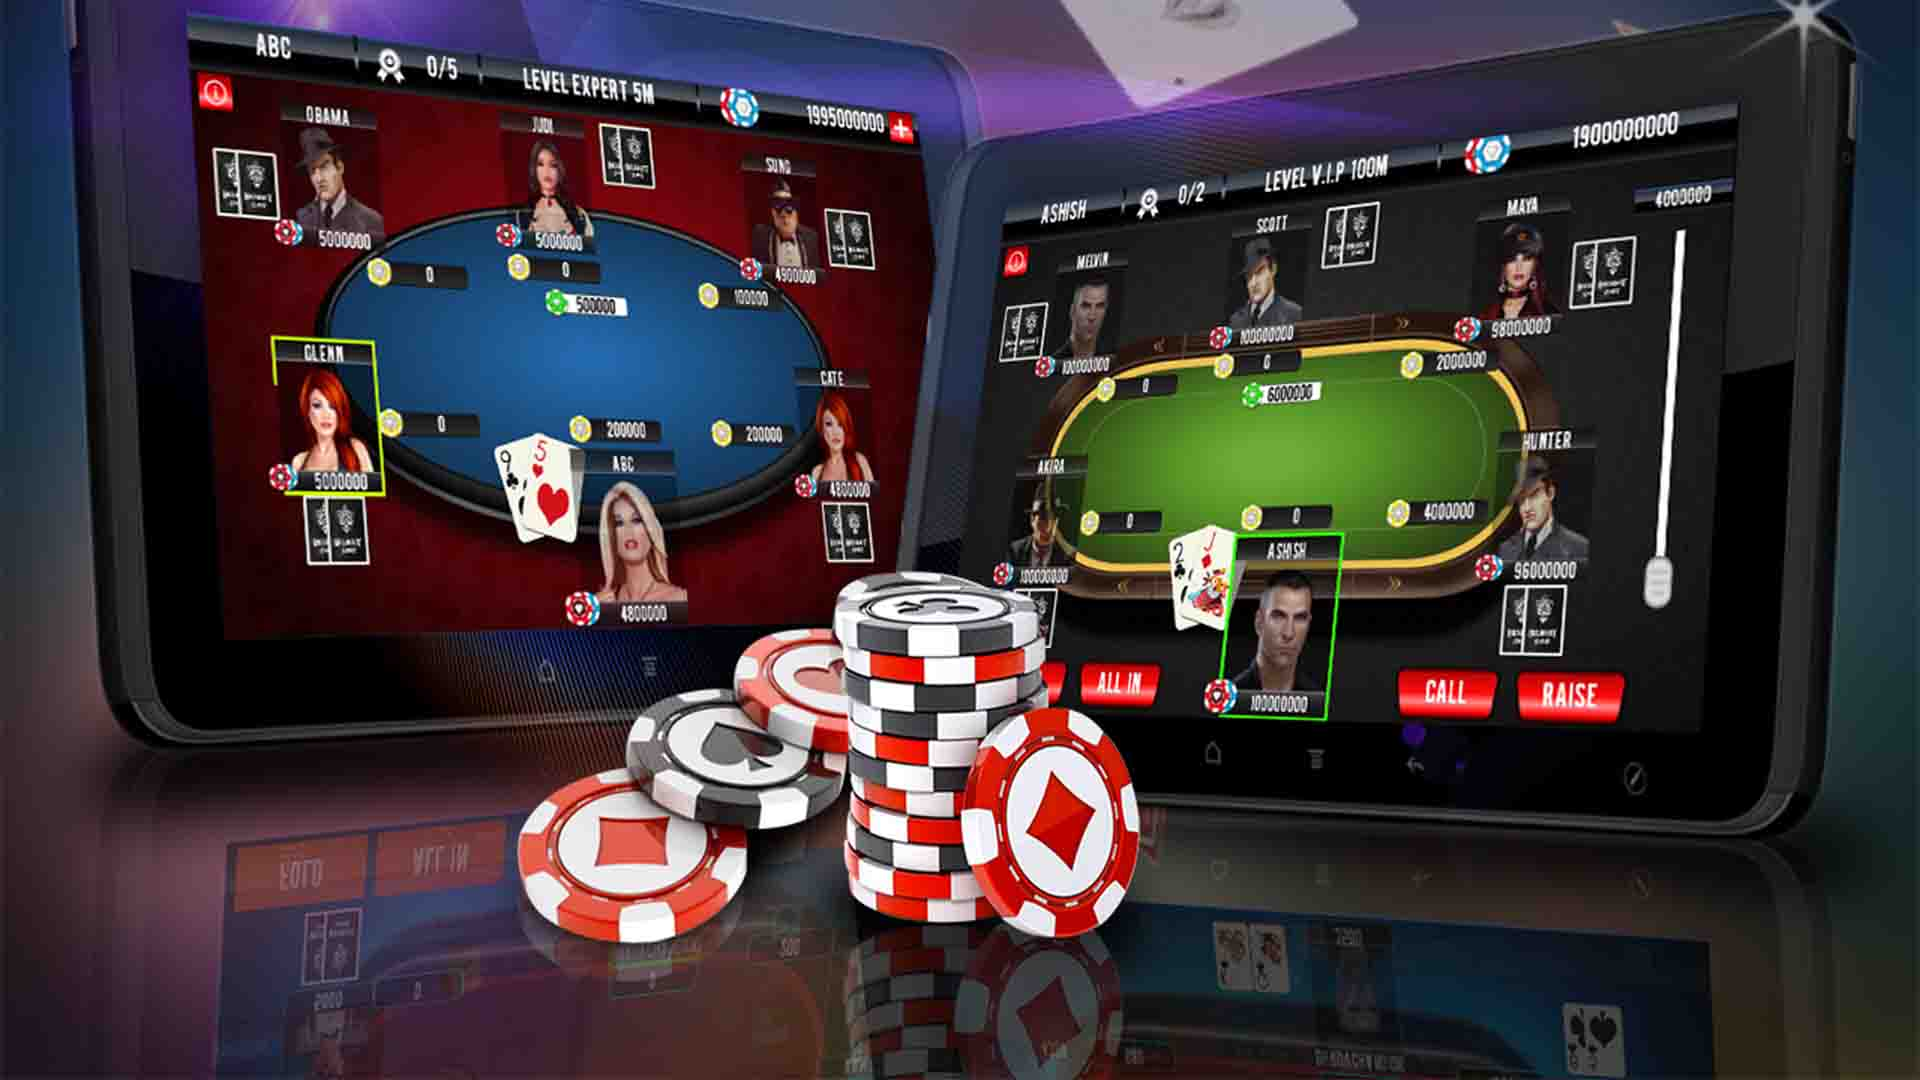 Basic Guide to Playing Online Poker Gambling